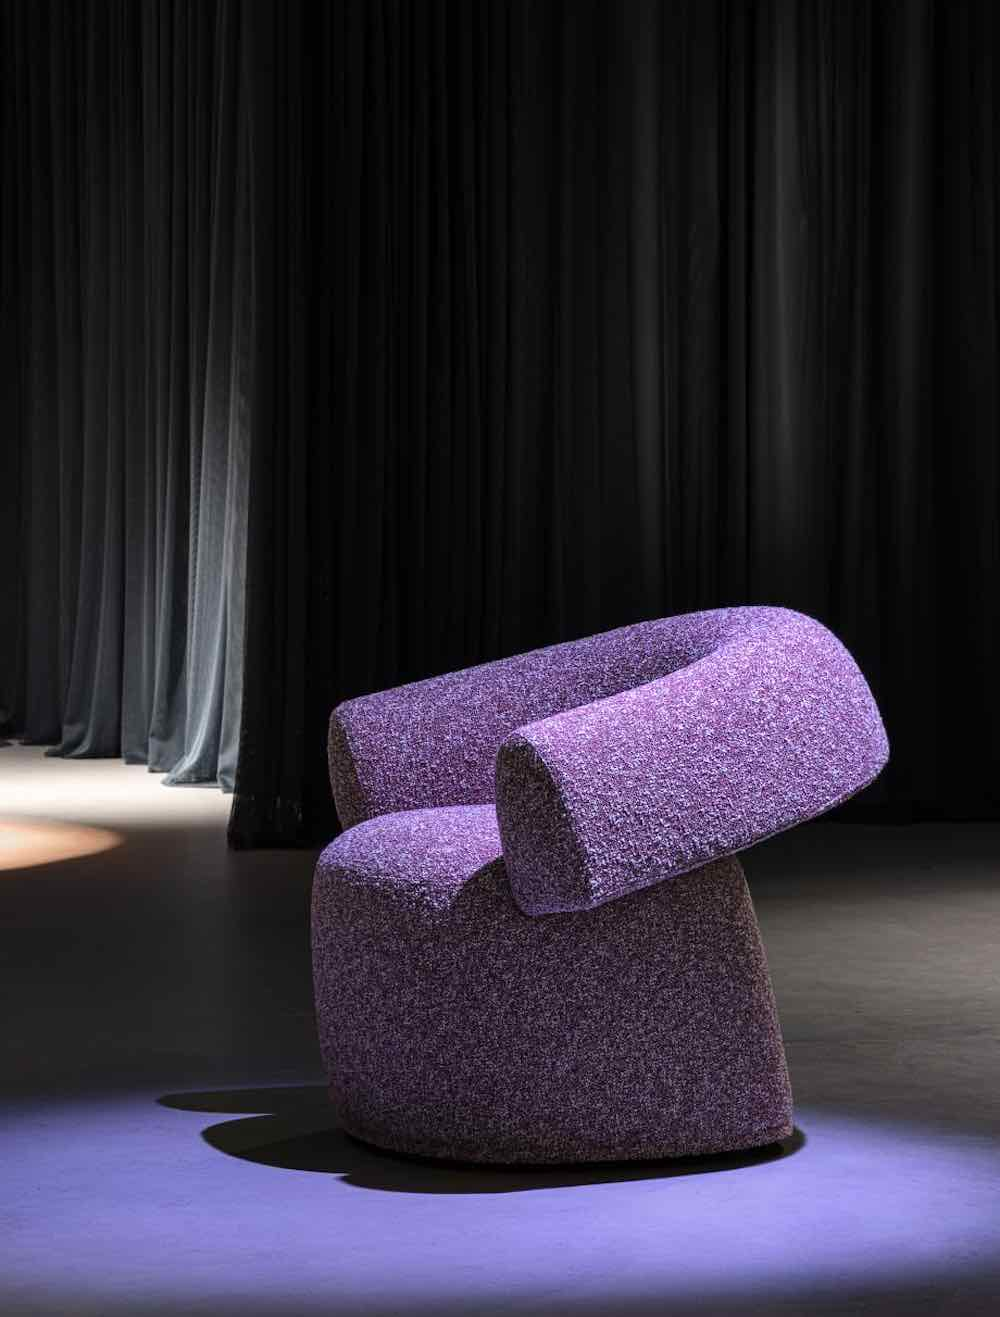 RUFF chair by Patricia Urquiola - Photo by Leonardo Duggento, courtesy of Moroso.